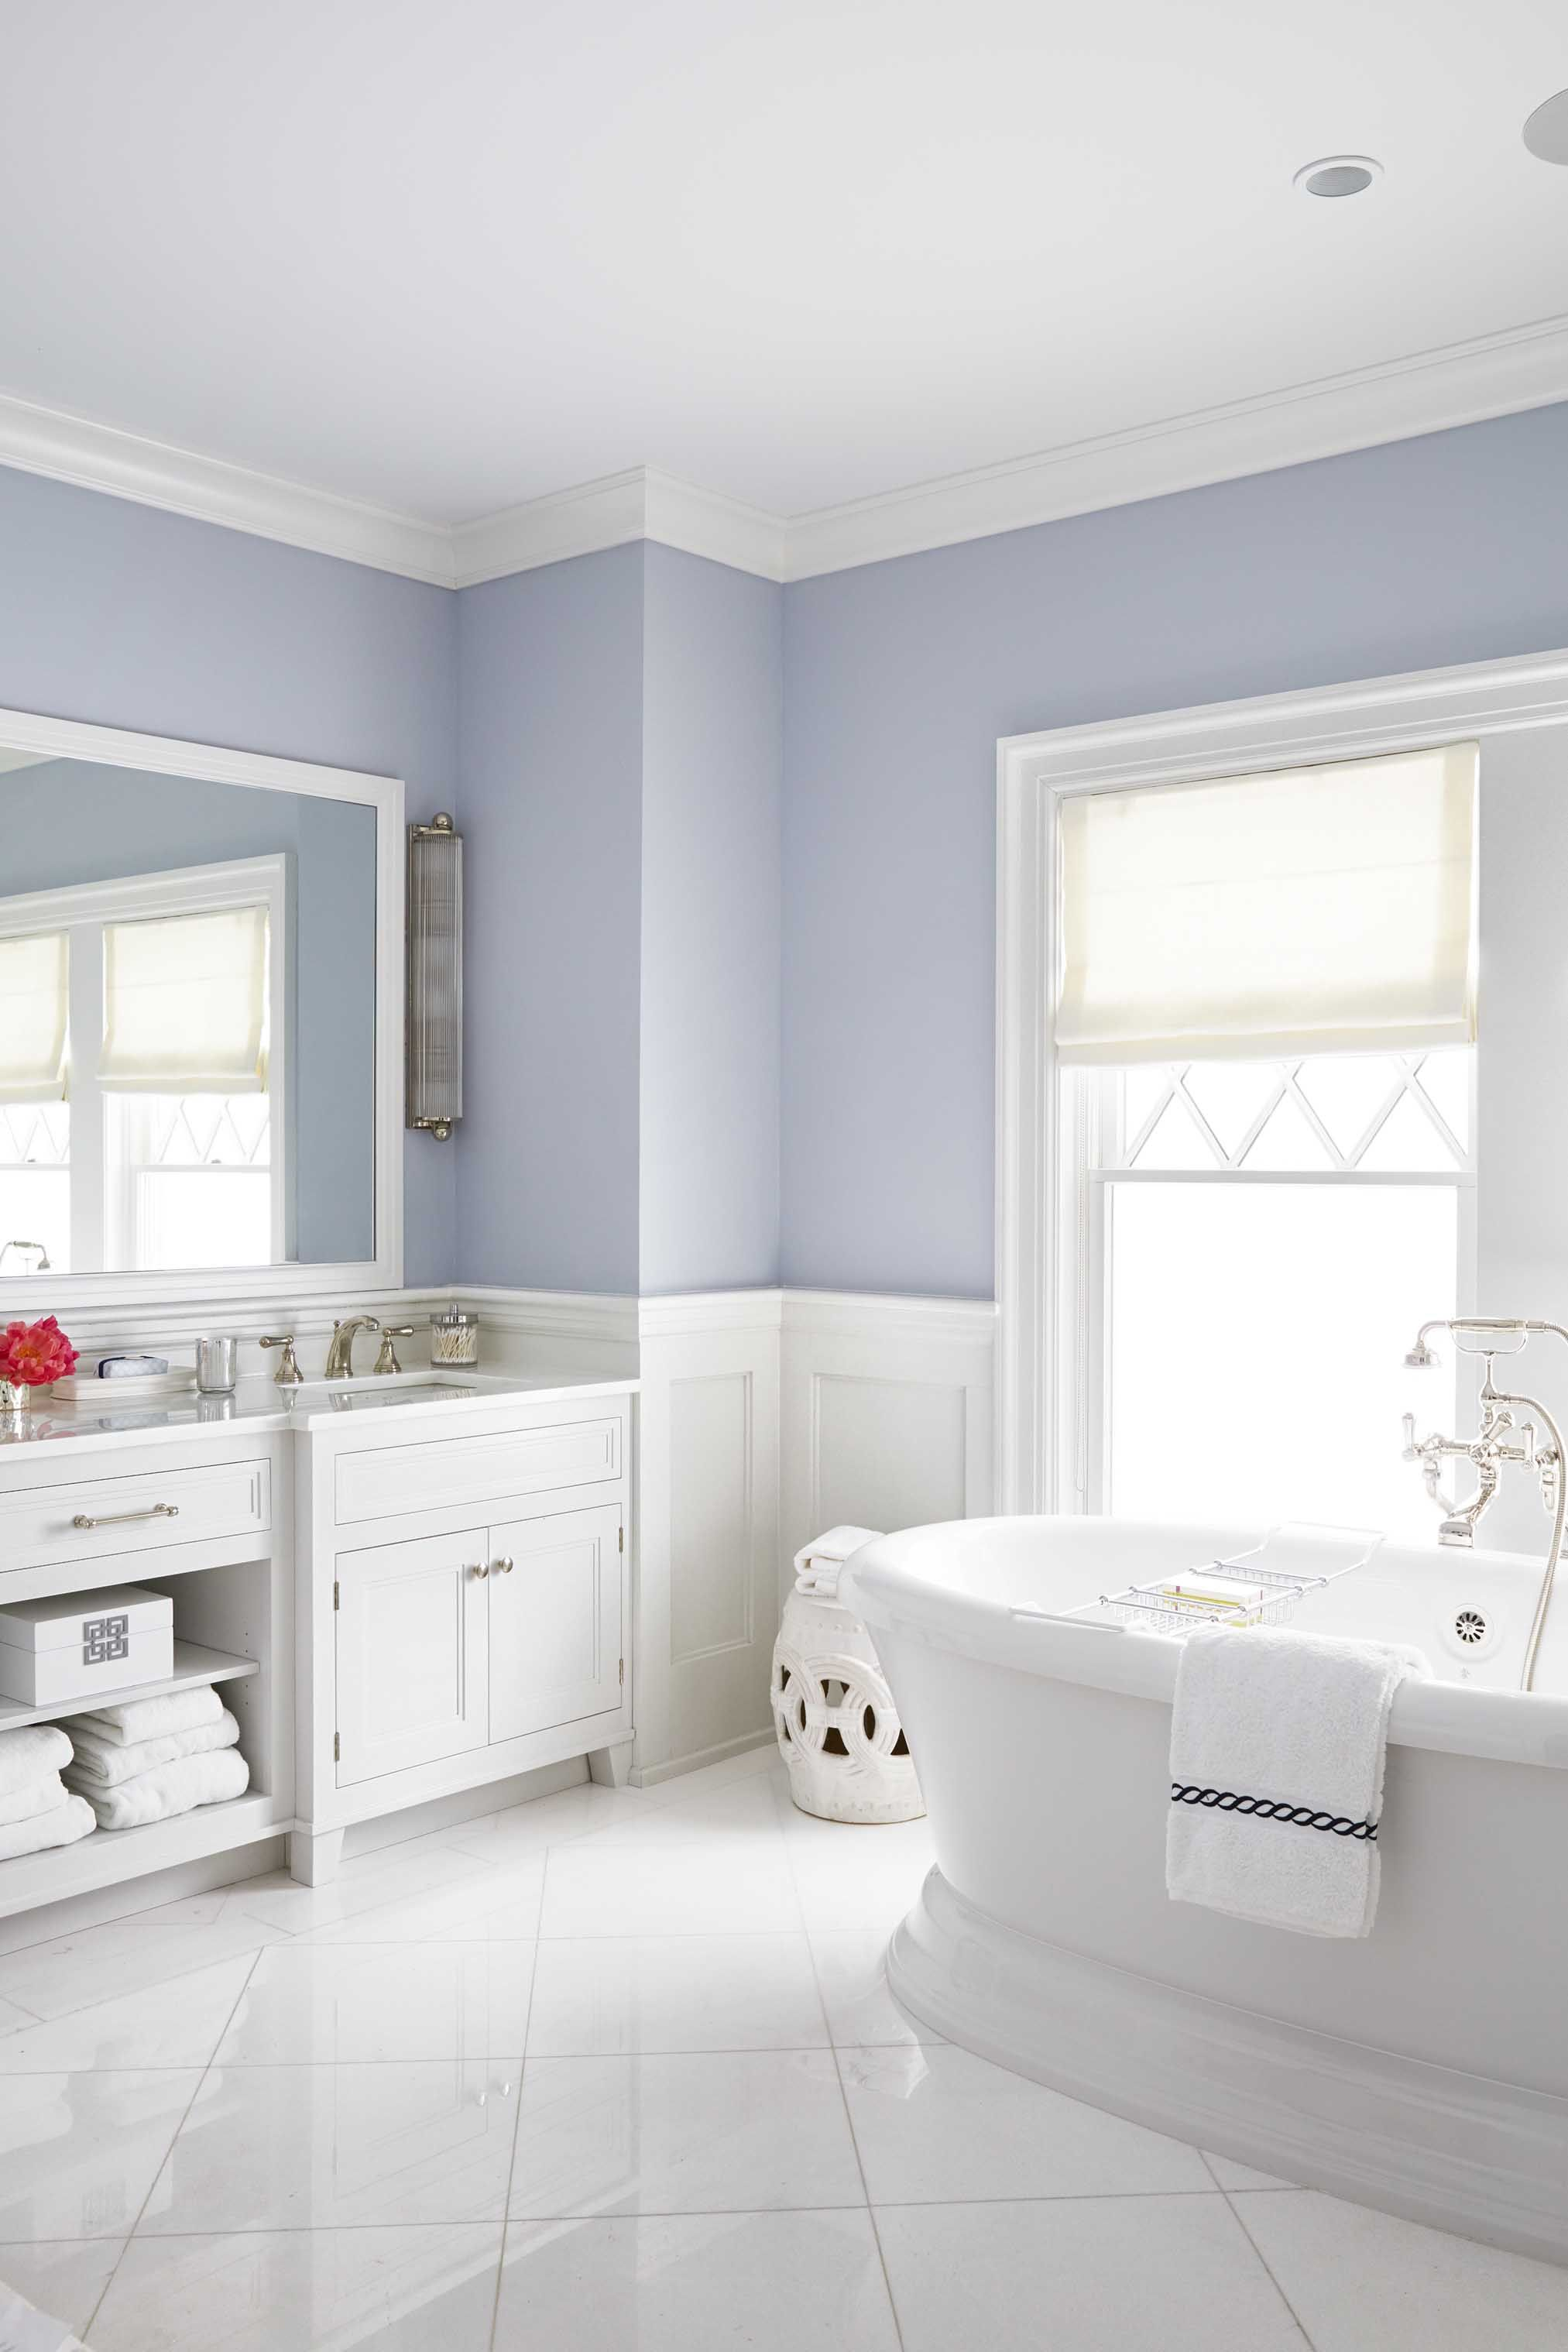 Bathroom Paints 20 Best Bathroom Paint Colors Popular Ideas For Bathroom Wall Colors